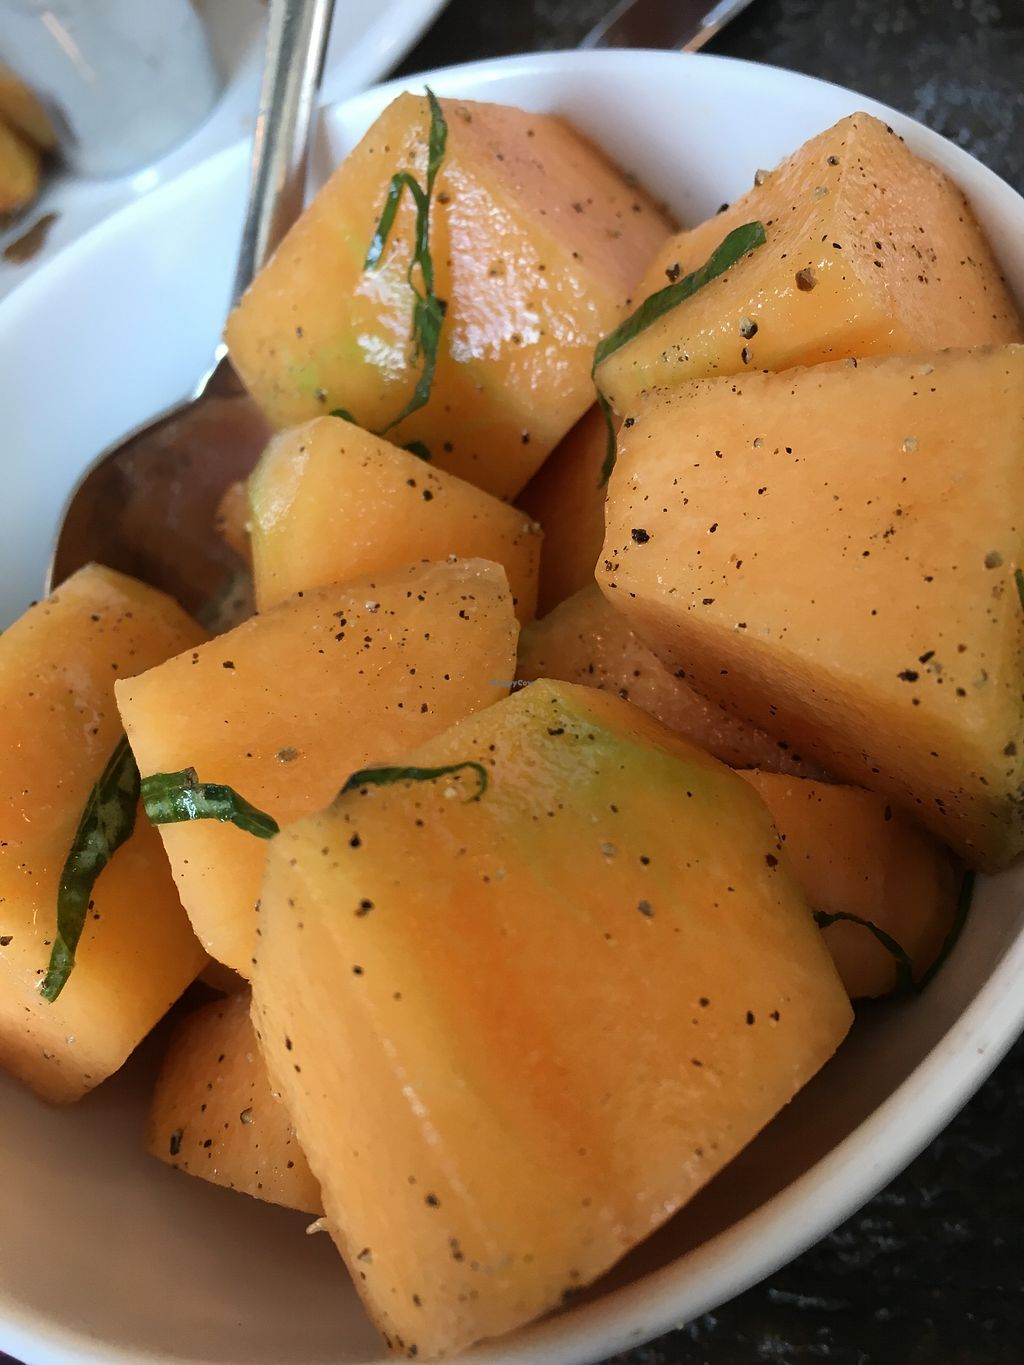 "Photo of Girard  by <a href=""/members/profile/cookiem"">cookiem</a> <br/>Cantaloupe salad (vegan) <br/> June 24, 2017  - <a href='/contact/abuse/image/94532/272846'>Report</a>"